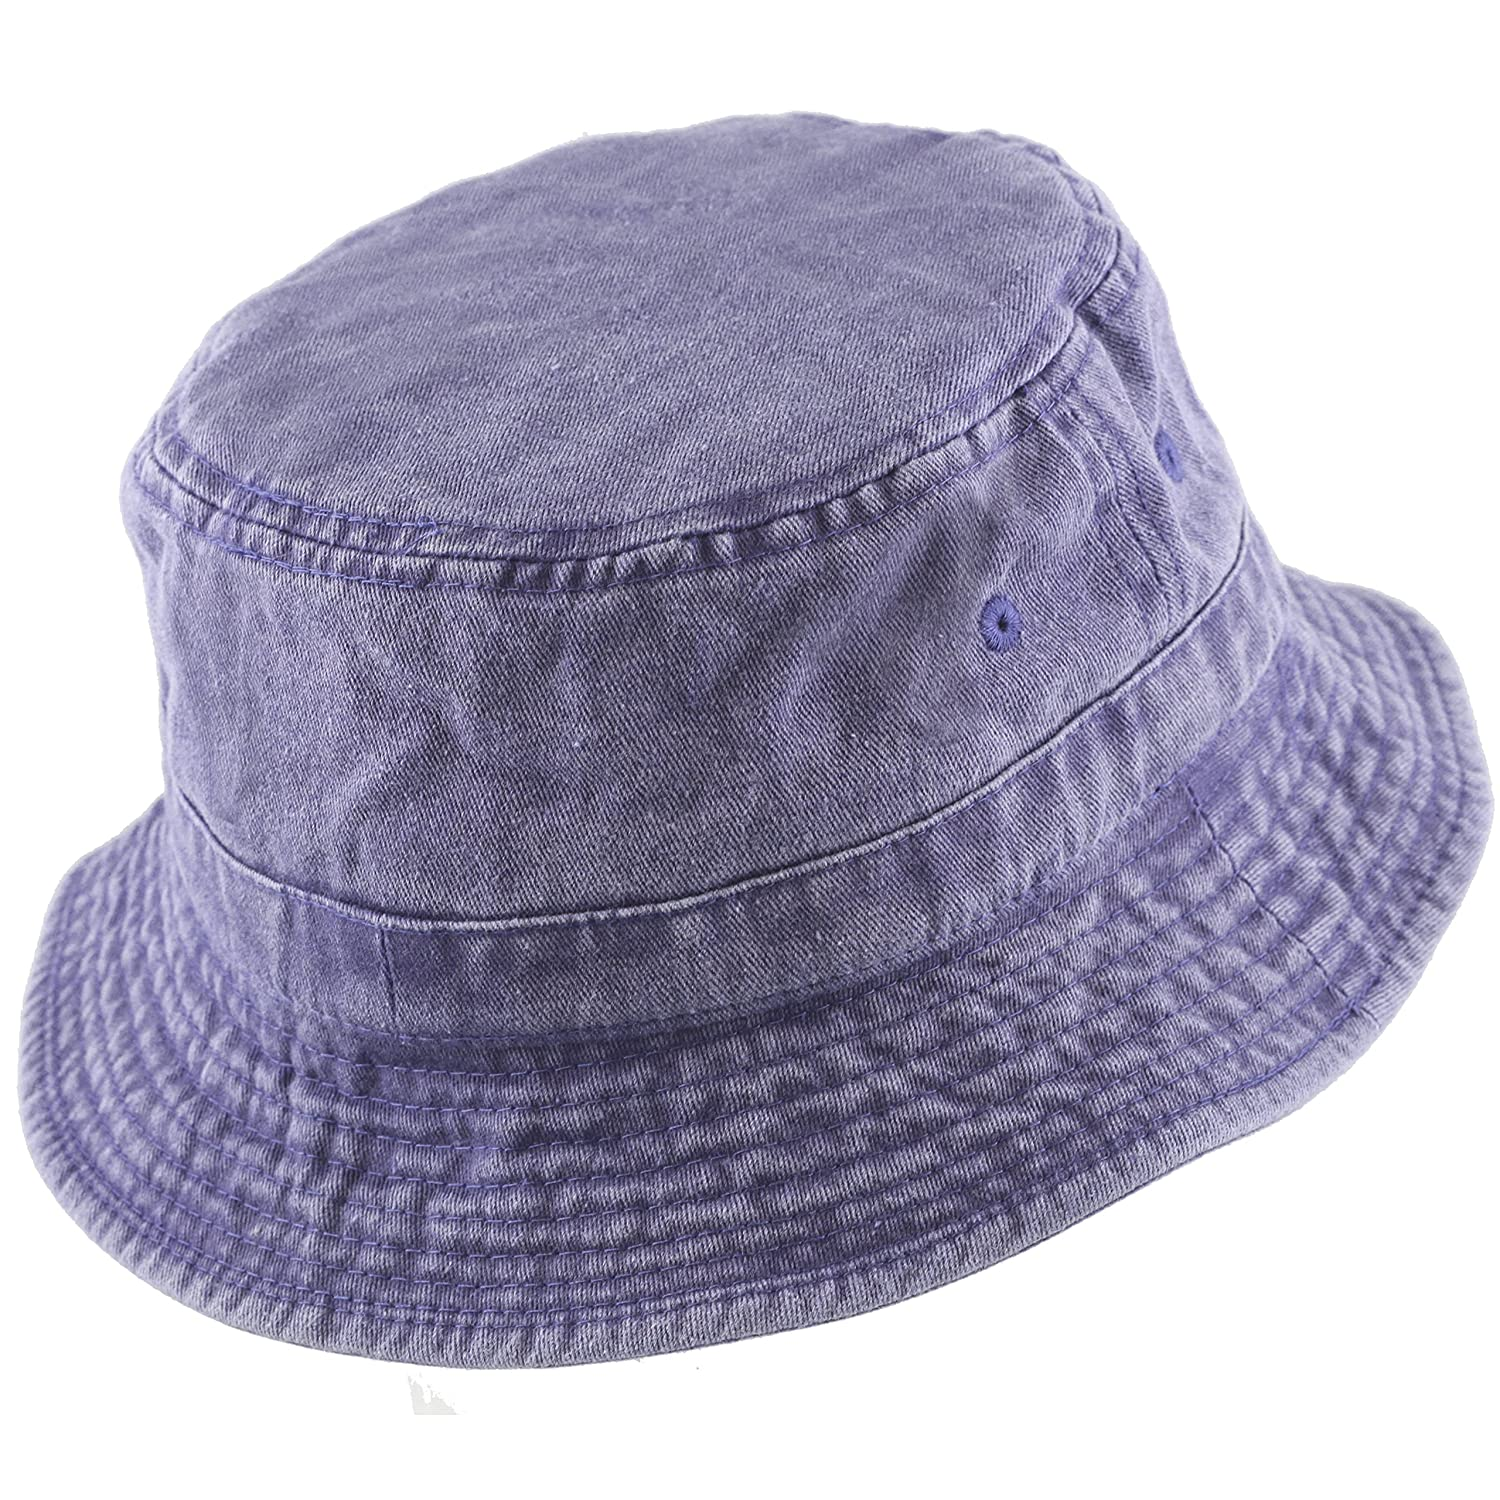 THE HAT DEPOT 300N 100/% Cotton Packable Pigment Washed Cotton Bucket Hat